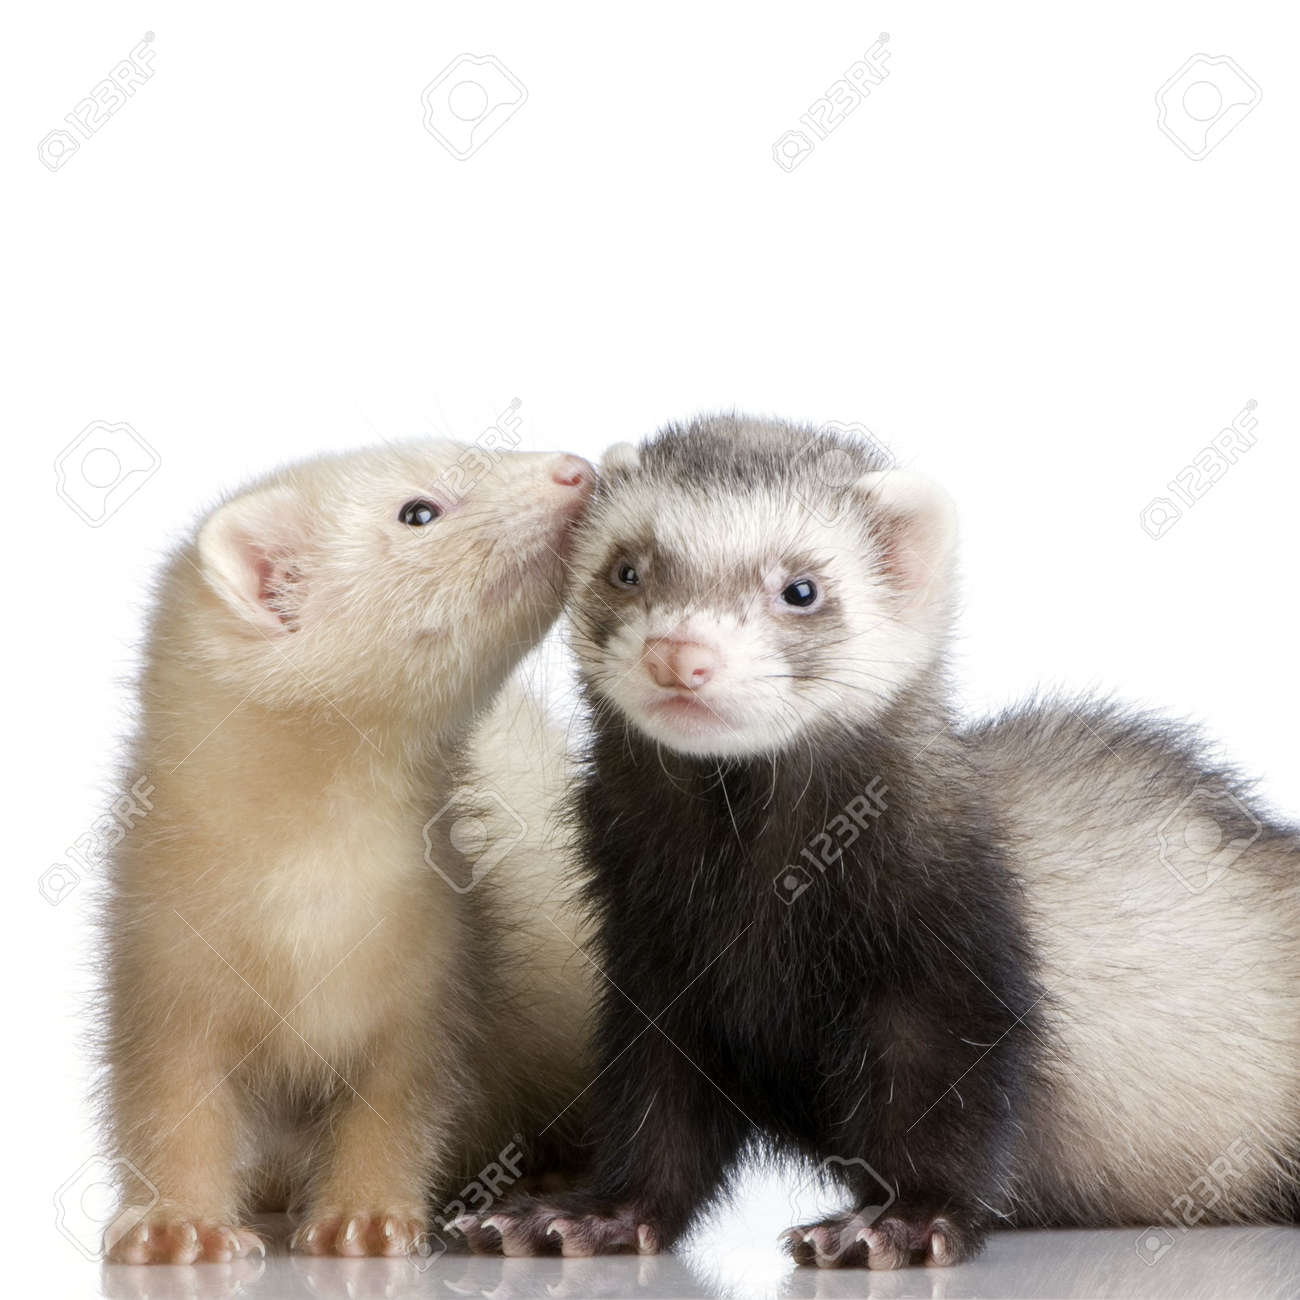 two Ferrets kits (10 weeks) in front of a white background Stock Photo - 989254